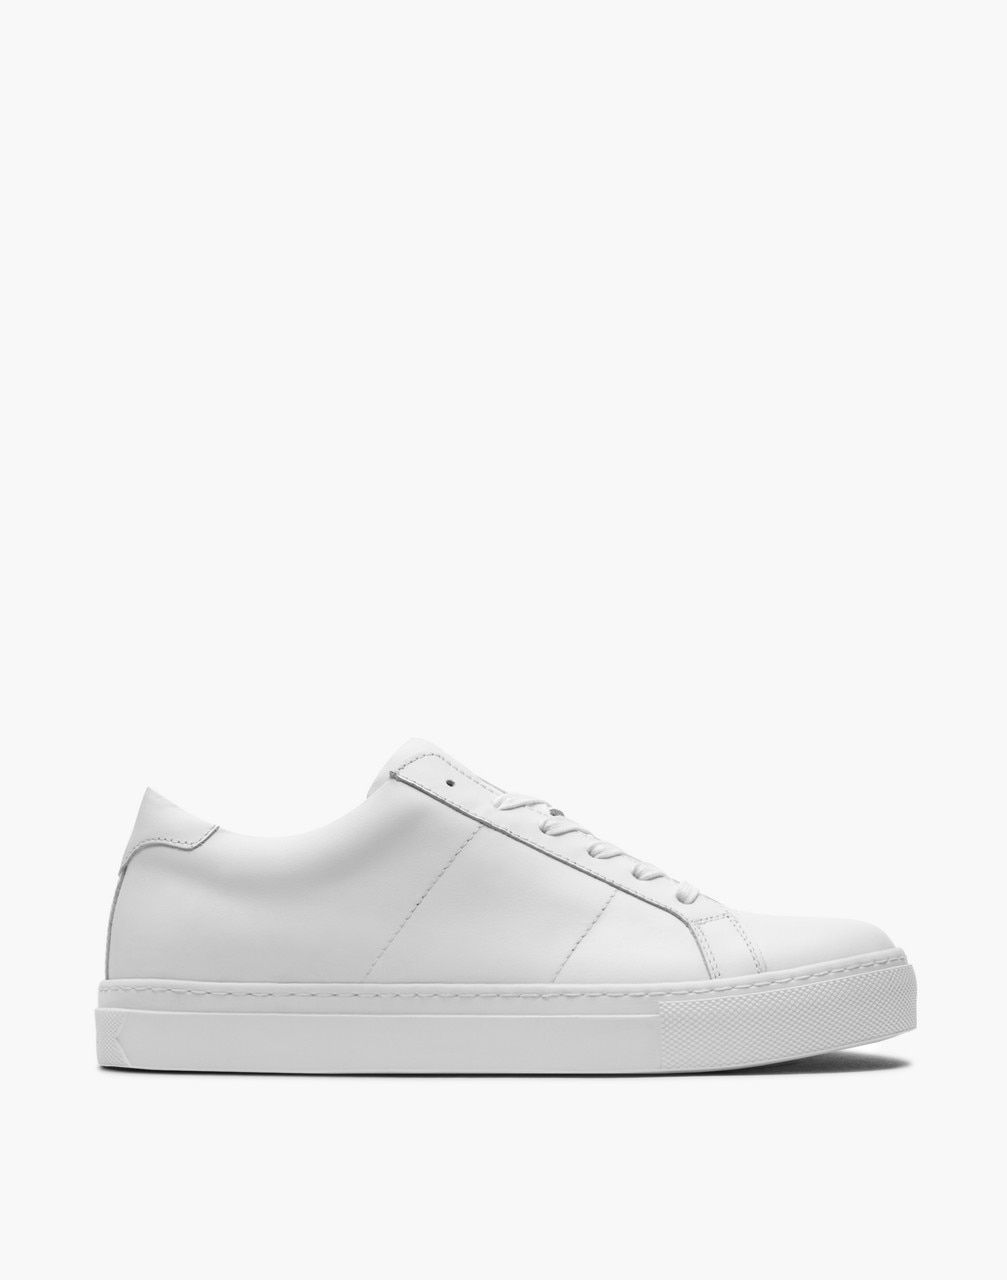 GREATS® Royale Leather Low-Top Sneakers in White